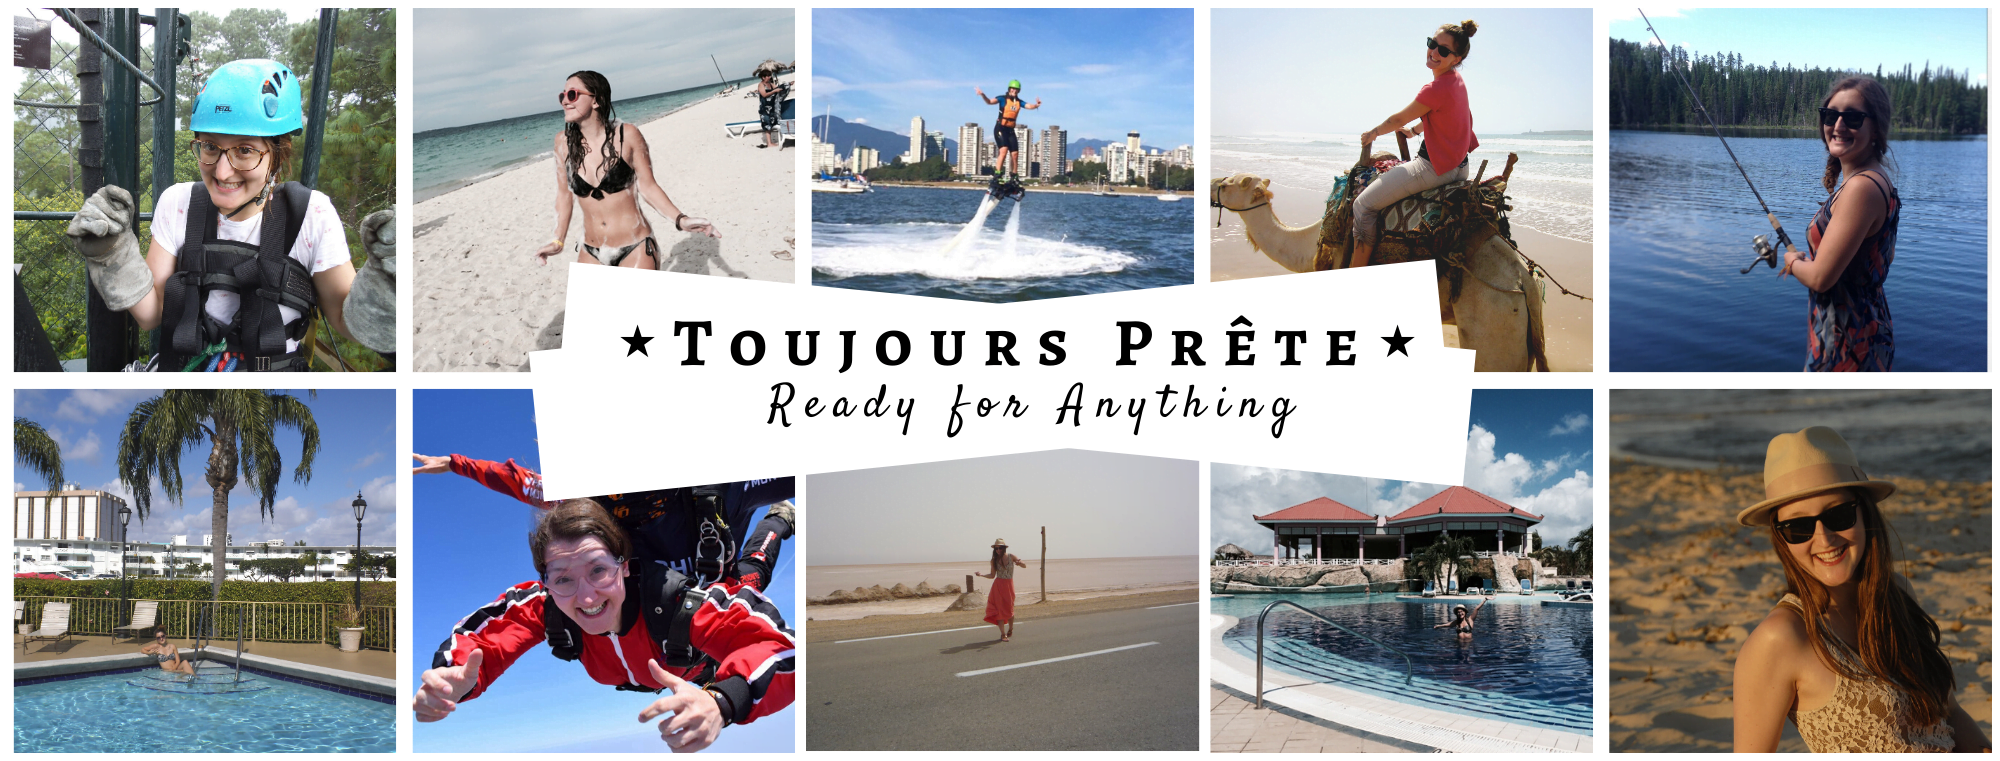 ⋆Toujours Prête⋆ Ready for Anything